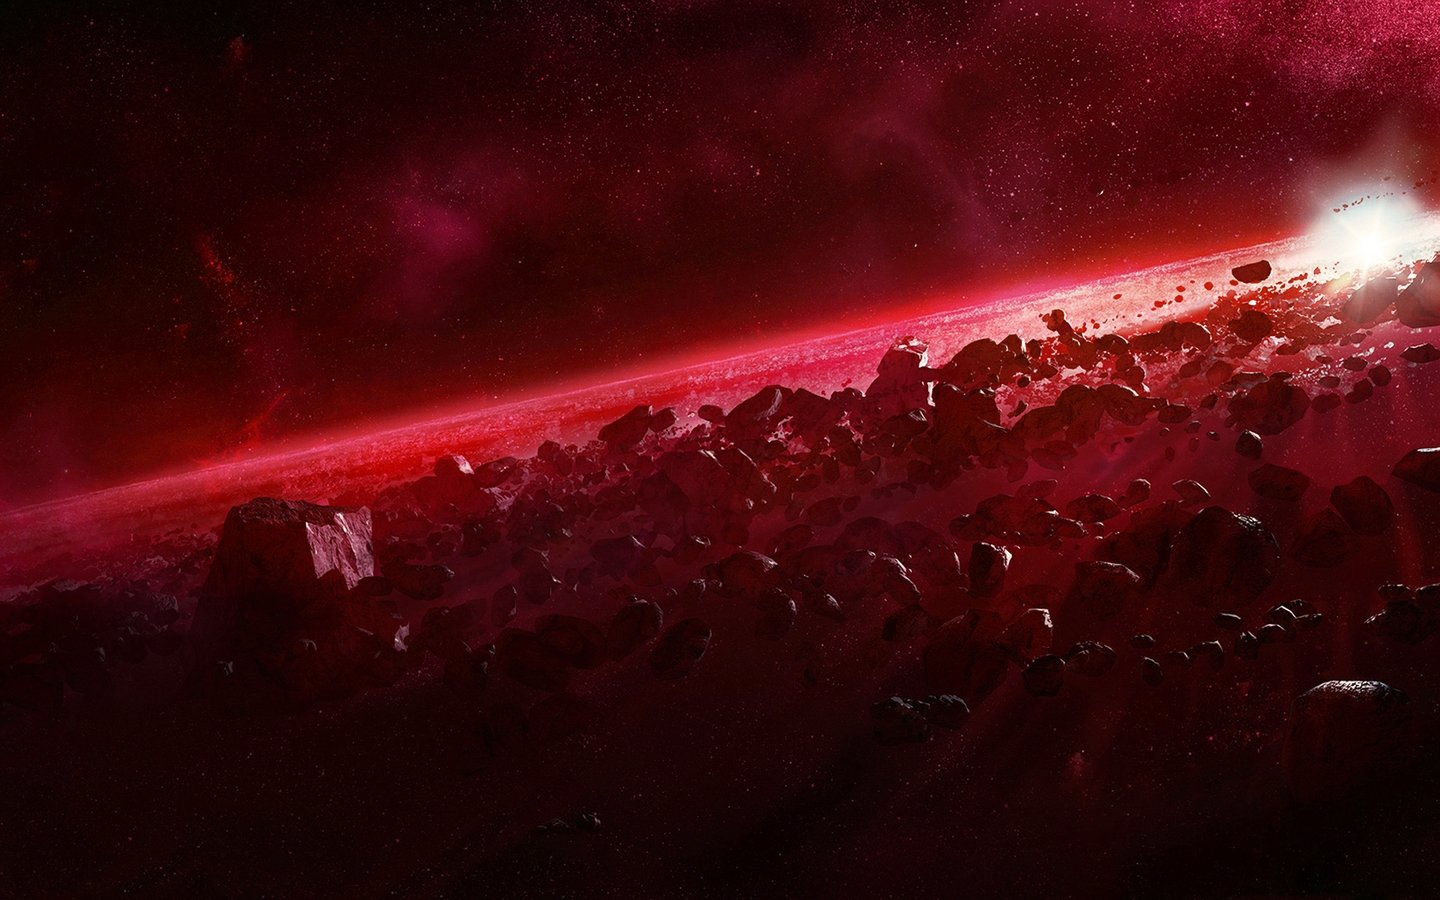 Red space wallpaper wallpapersafari - Red space wallpaper 4k ...